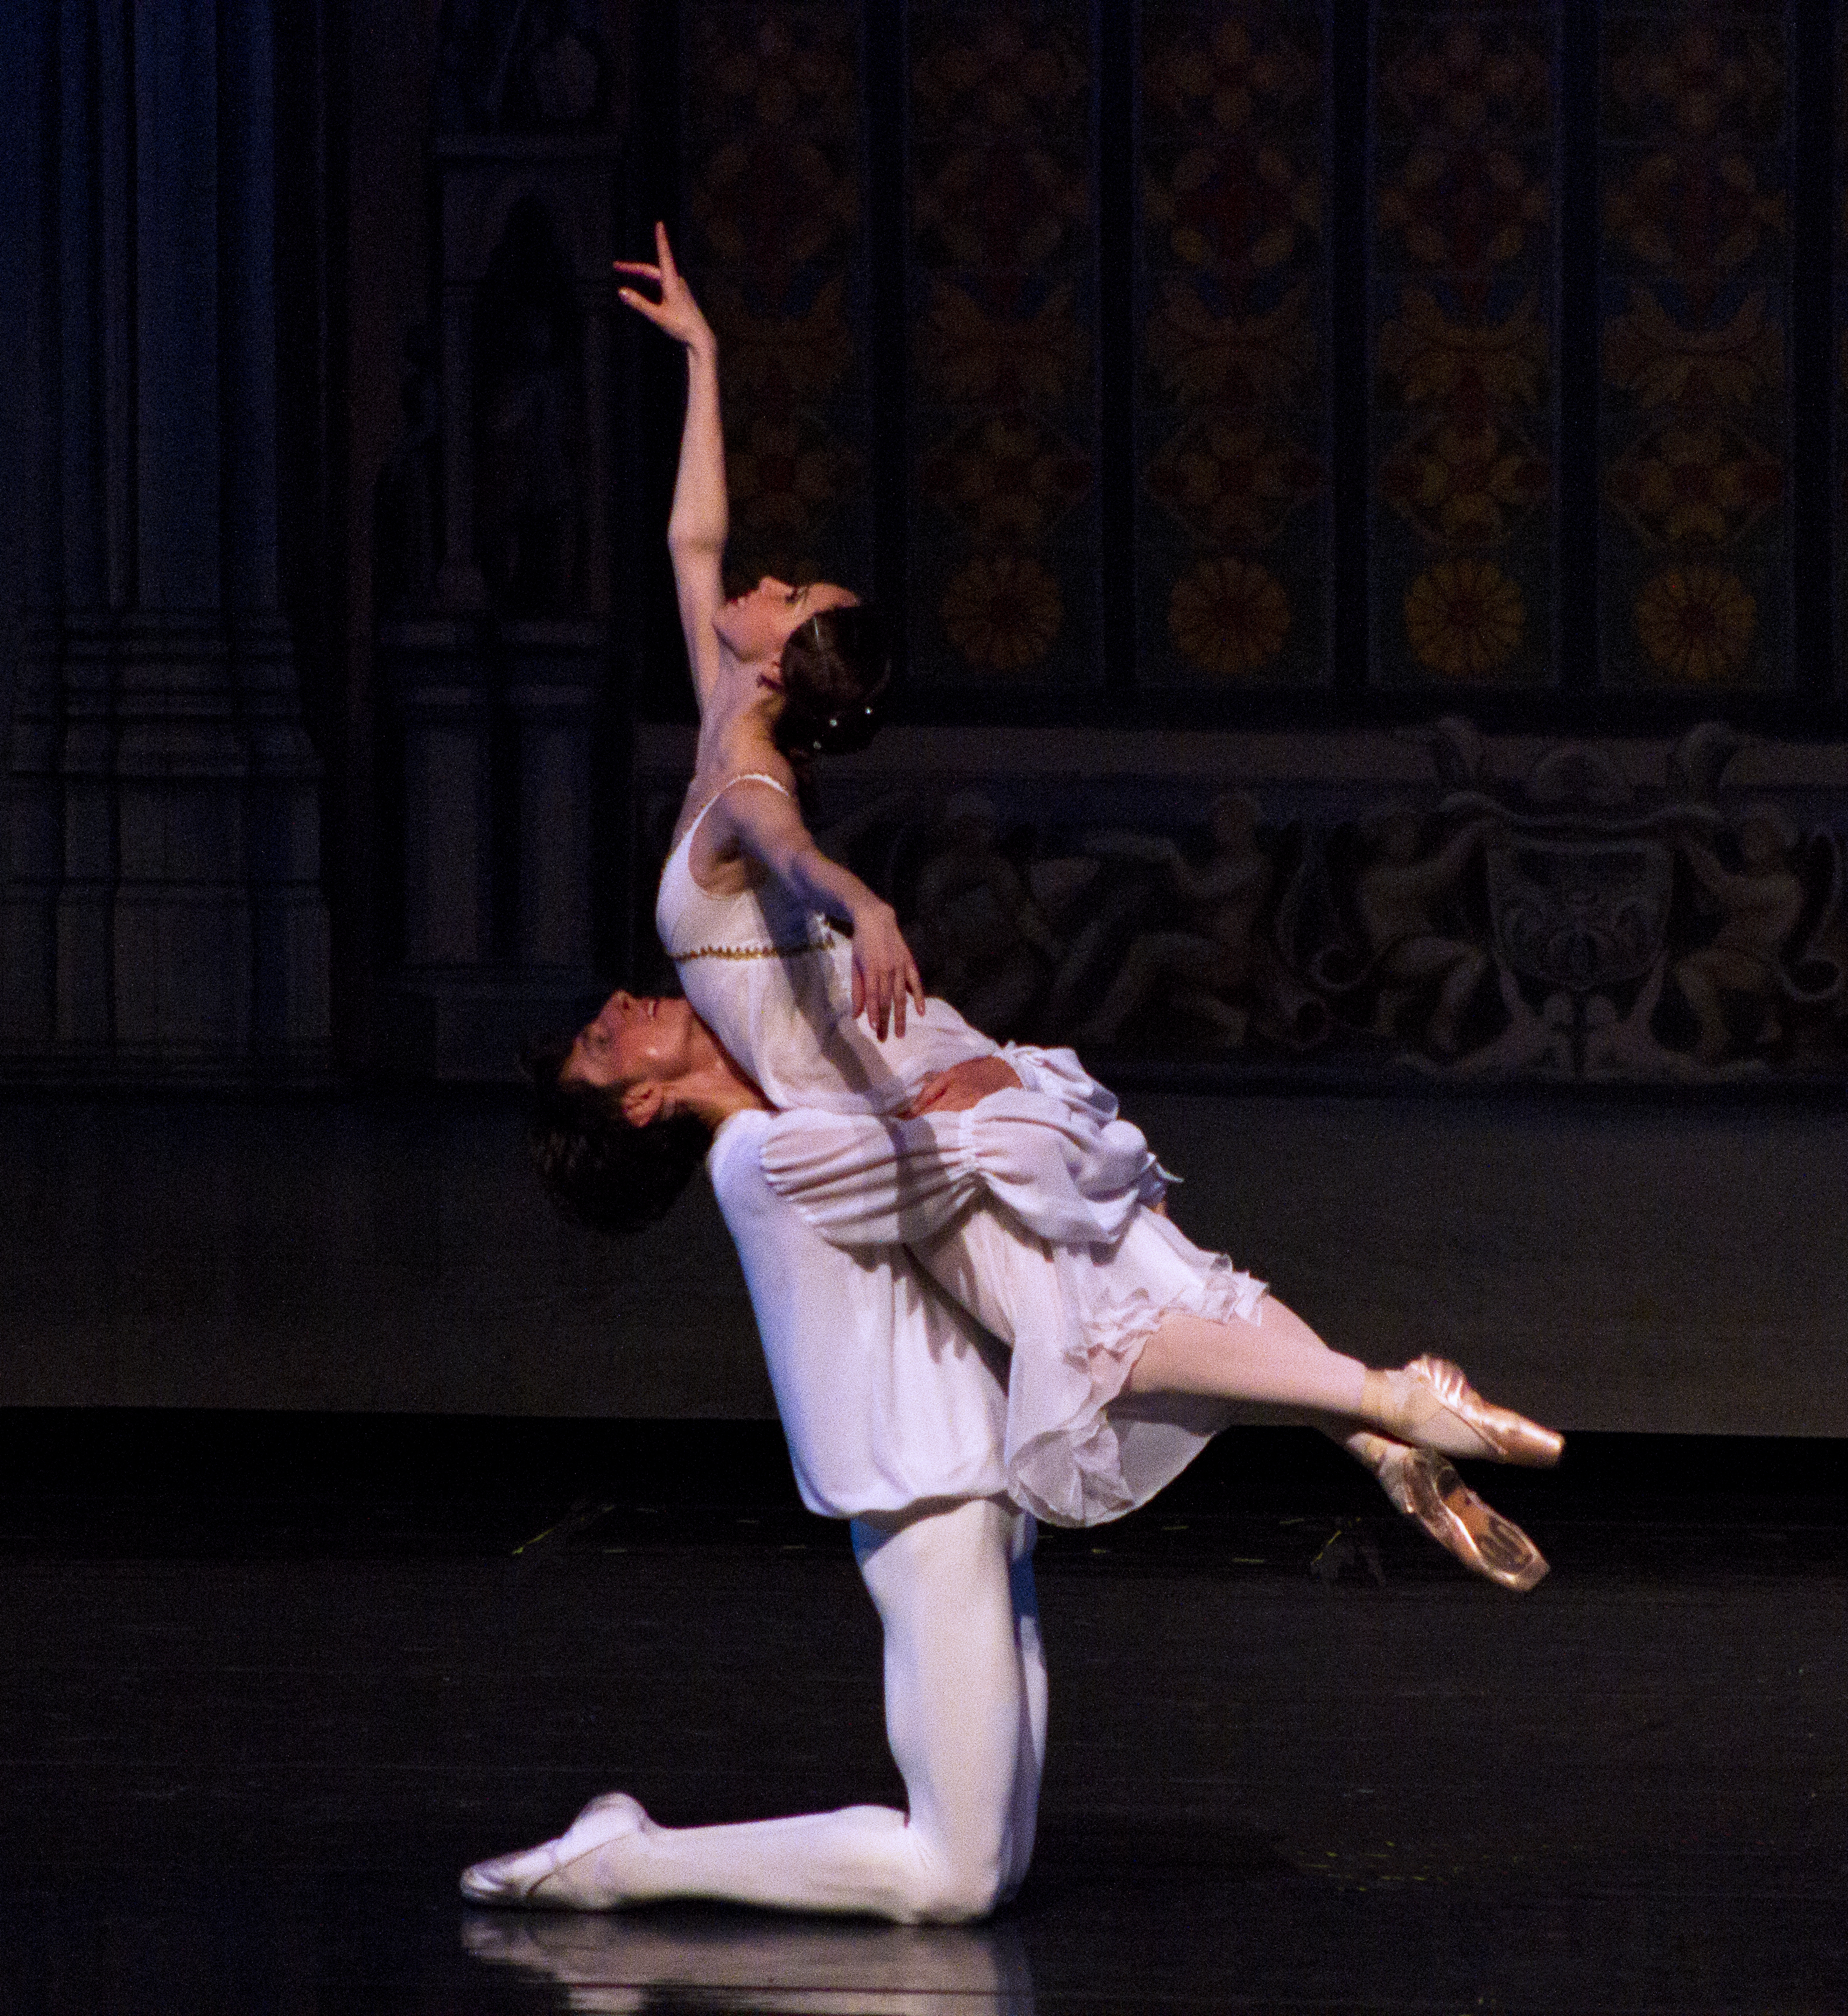 Alexandra Elagina and Anatoly Ustimov as Romeo and Juliet